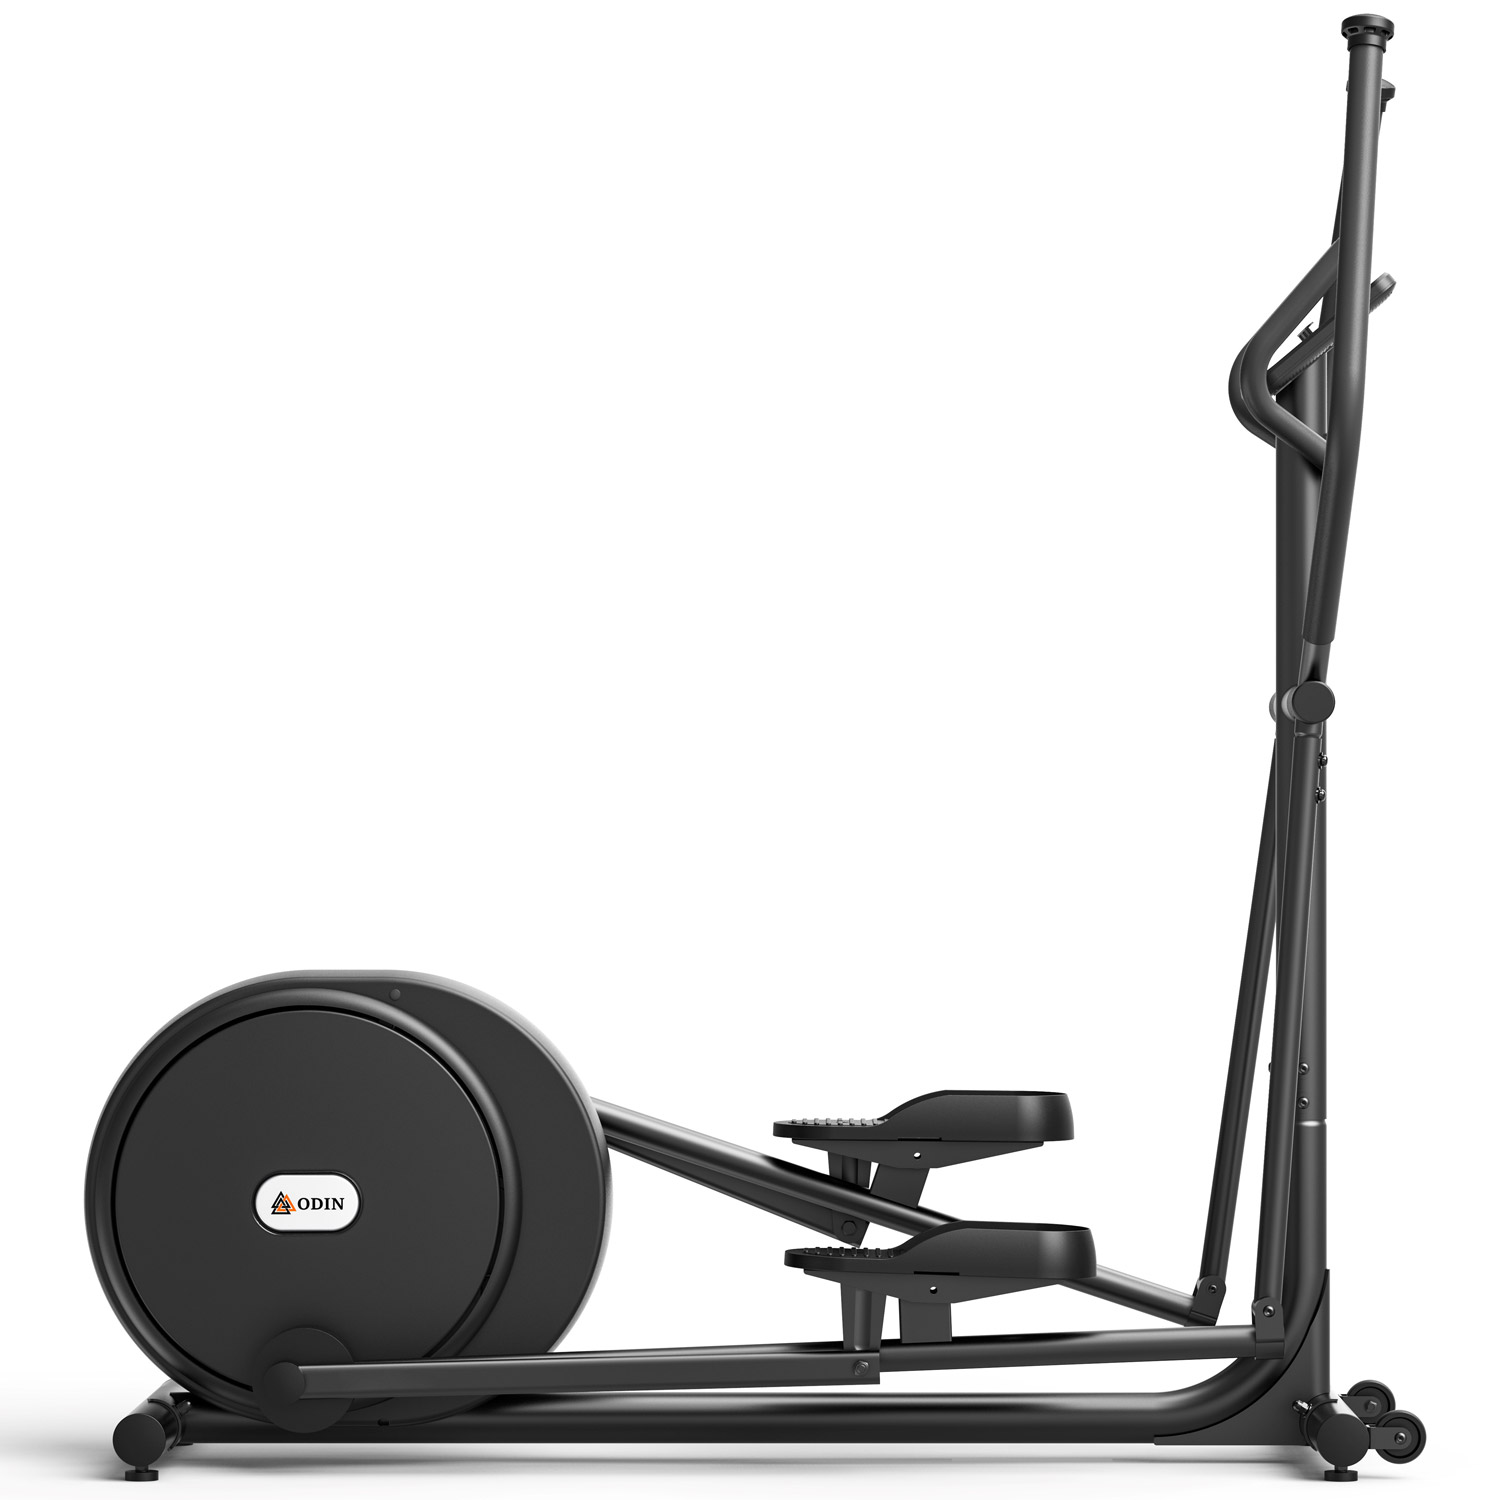 Billig crosstrainer